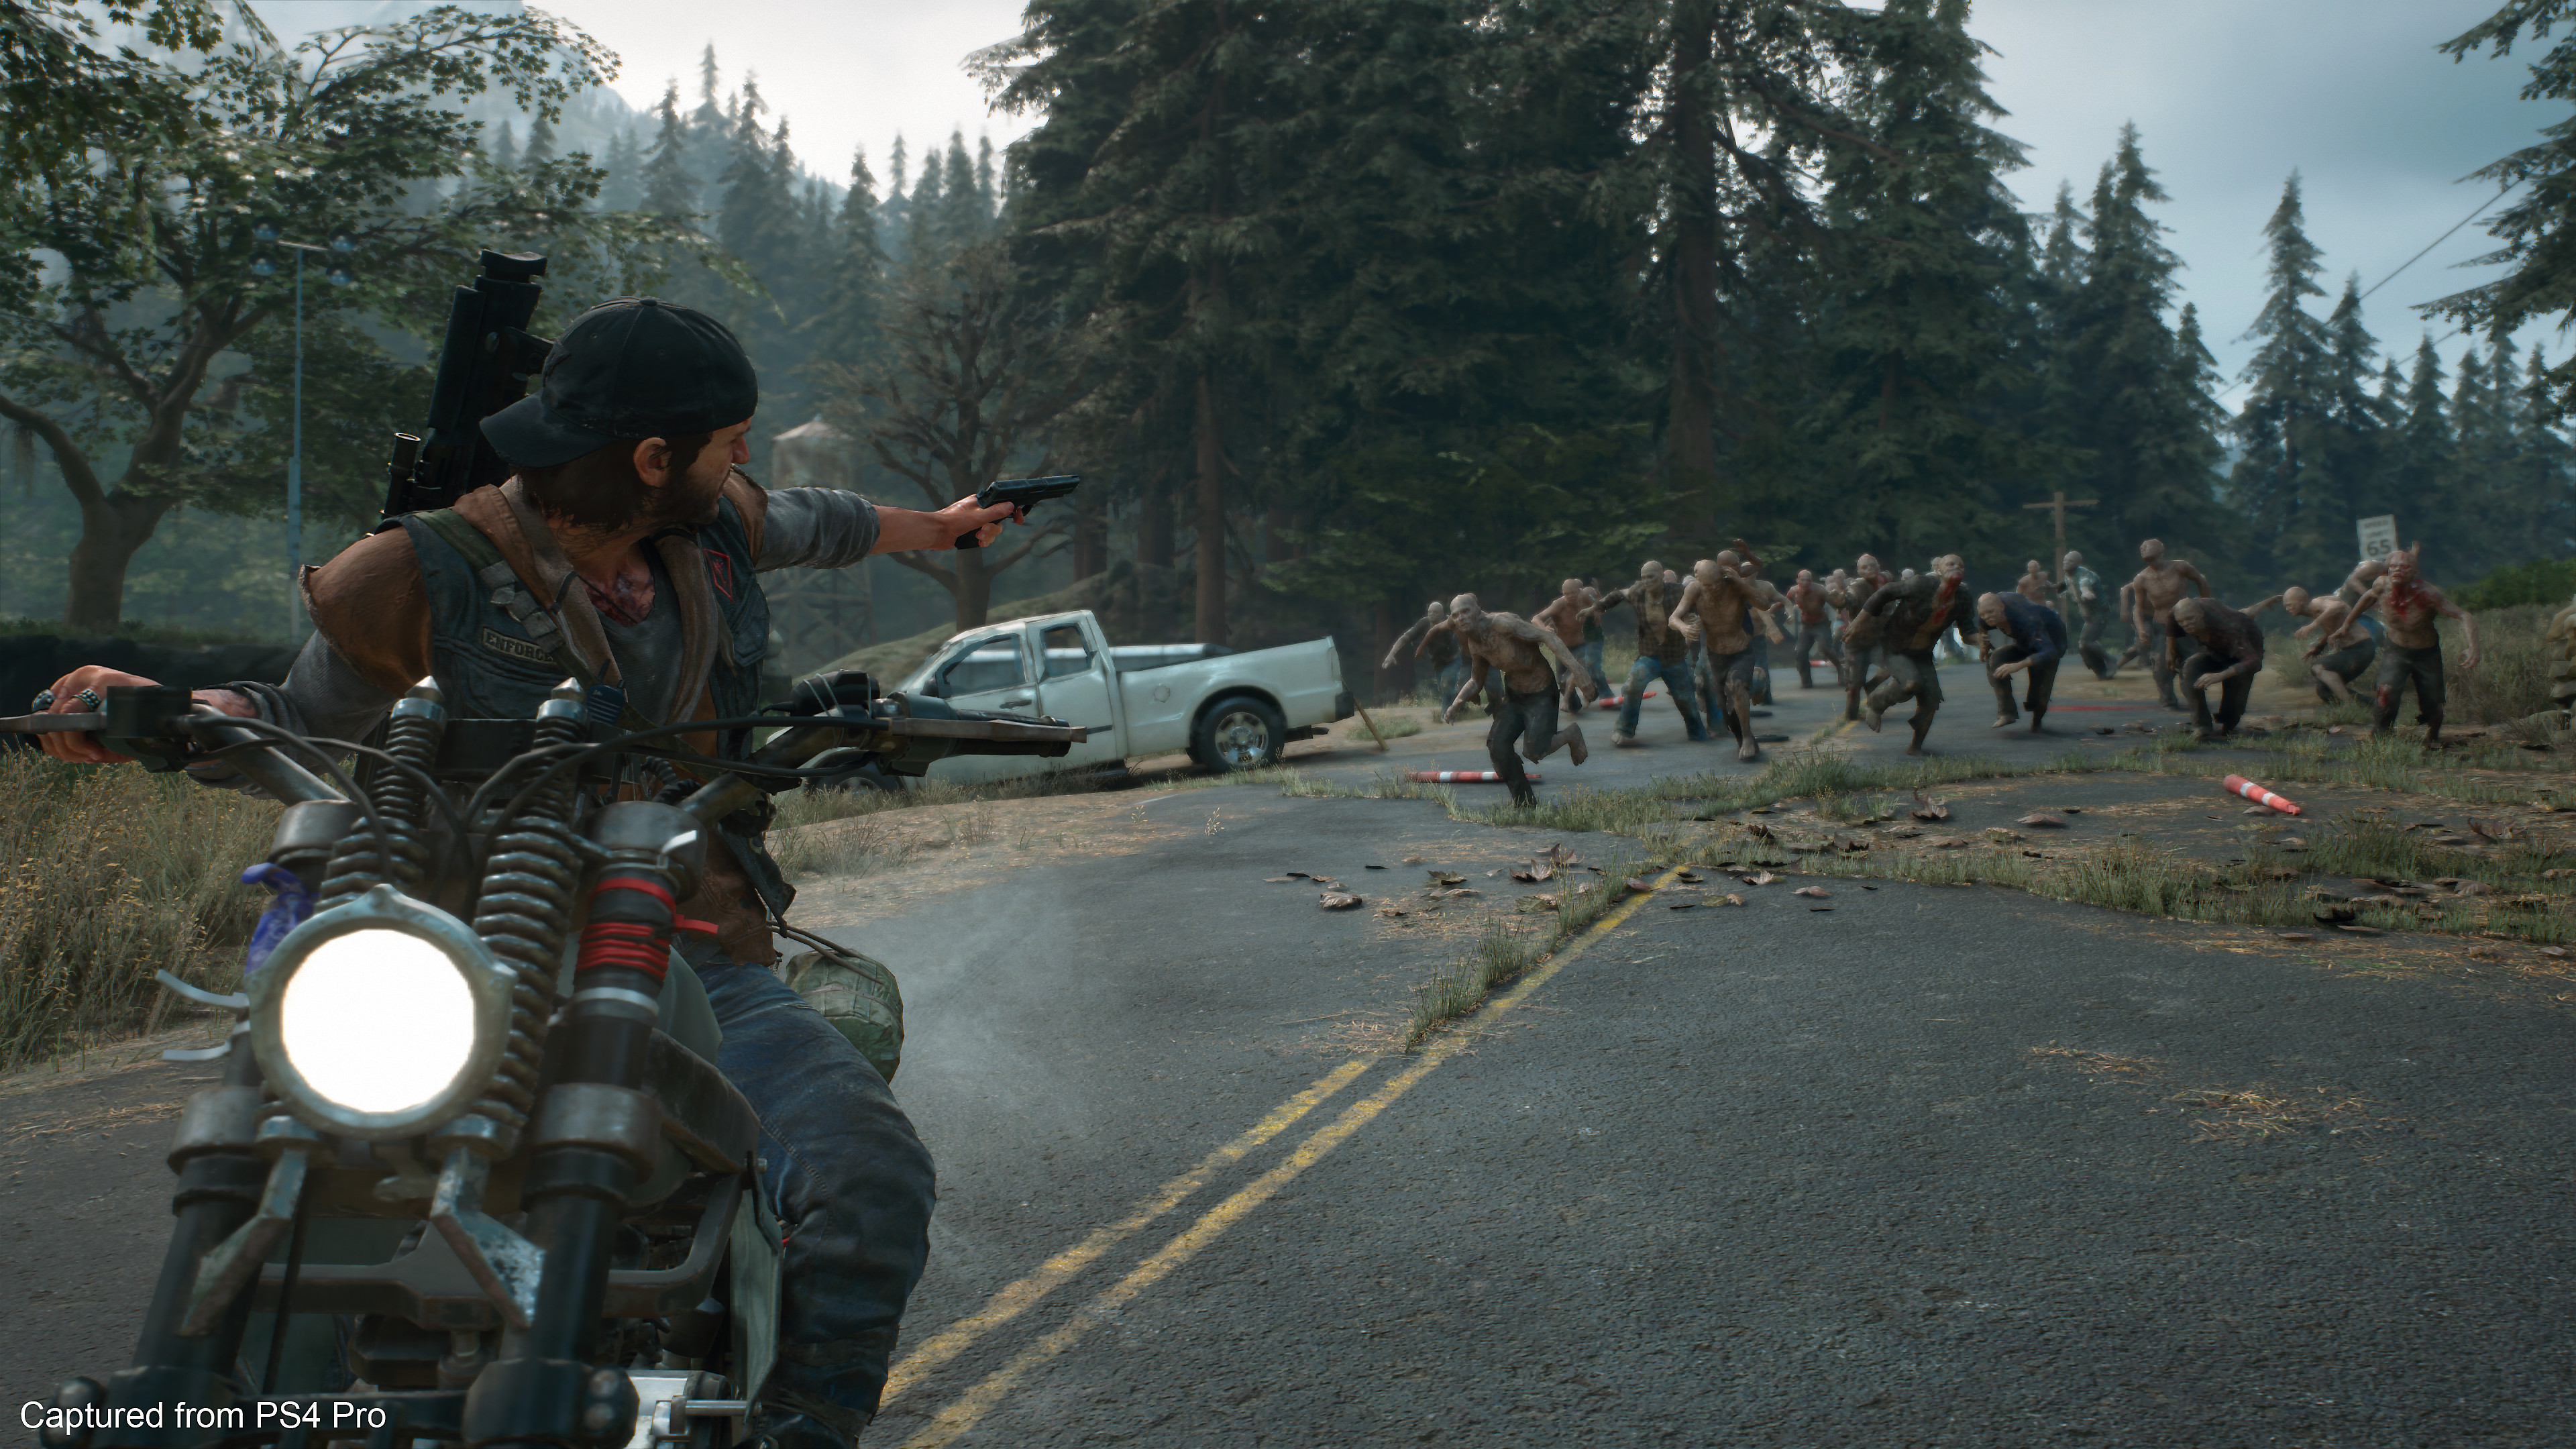 Days Gone Screenshot - Deacon shooting freakers on his bike